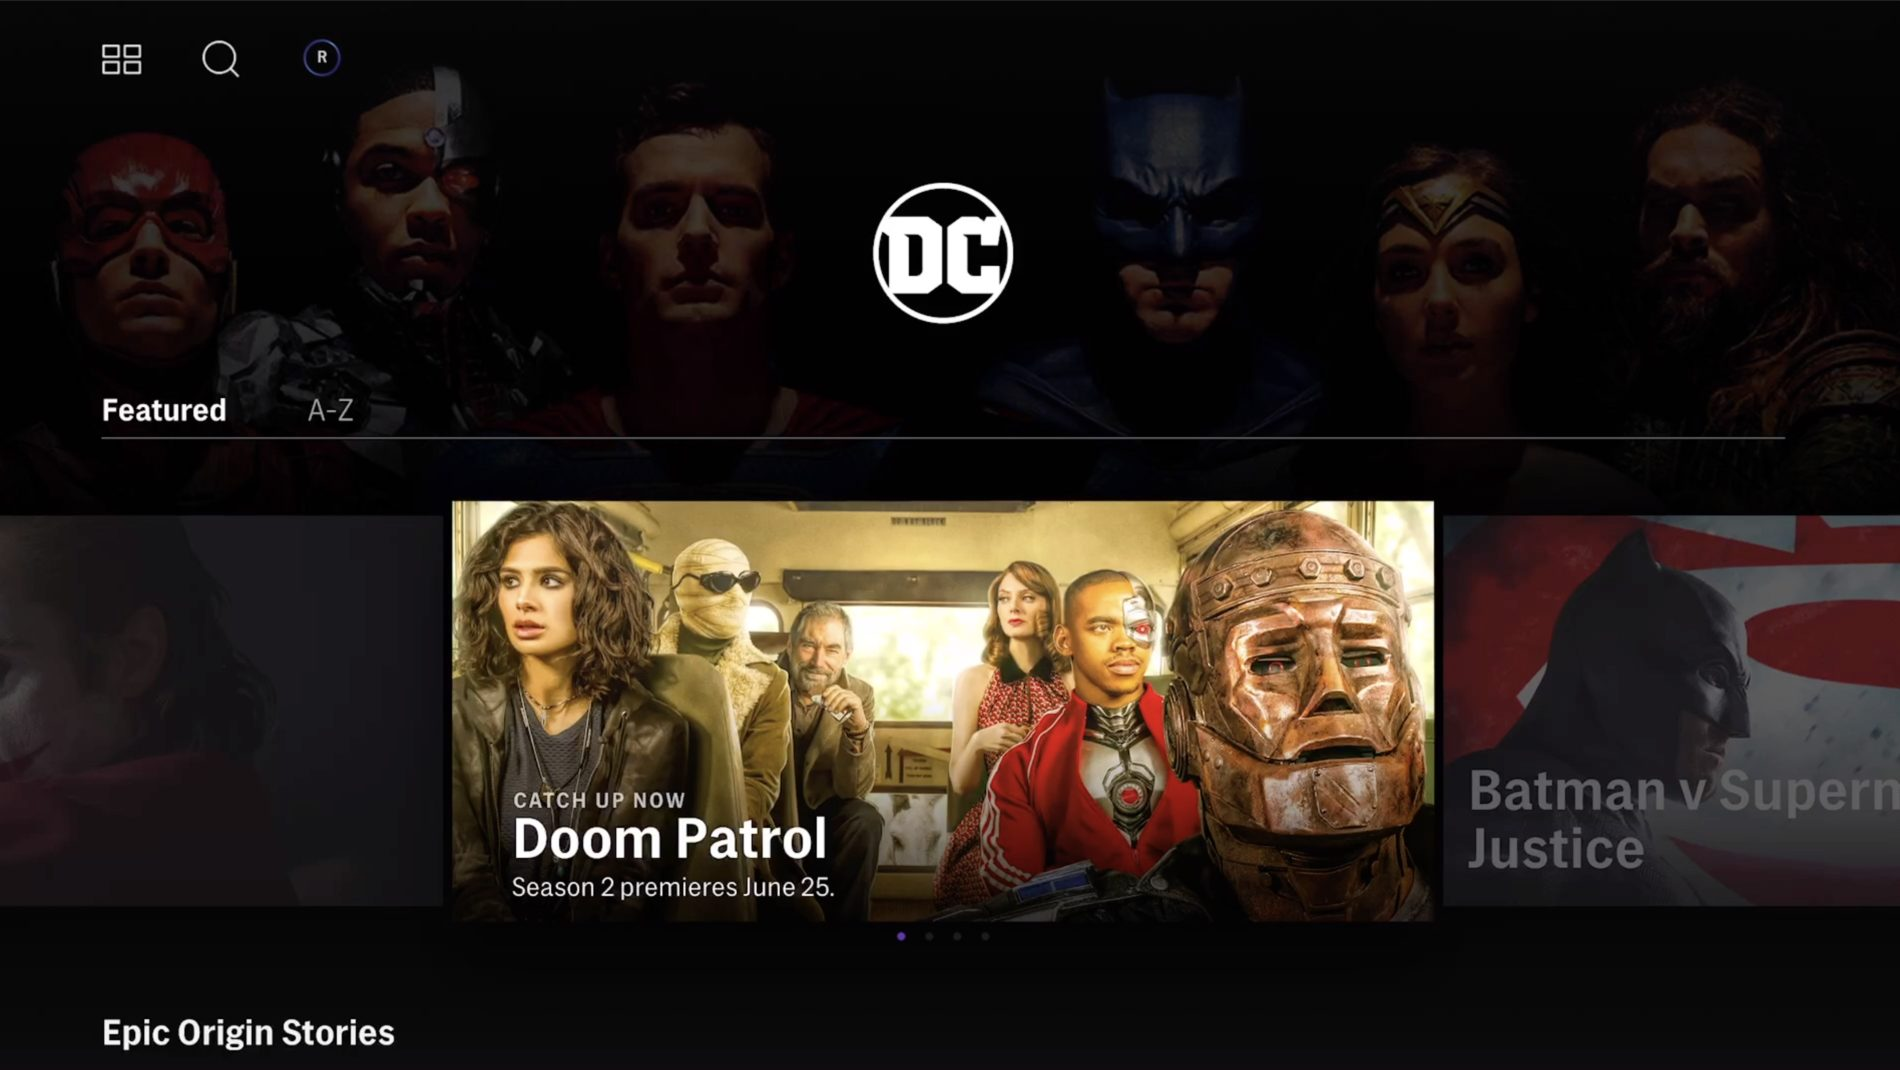 DC Comics hub on the HBO Max streaming service interface